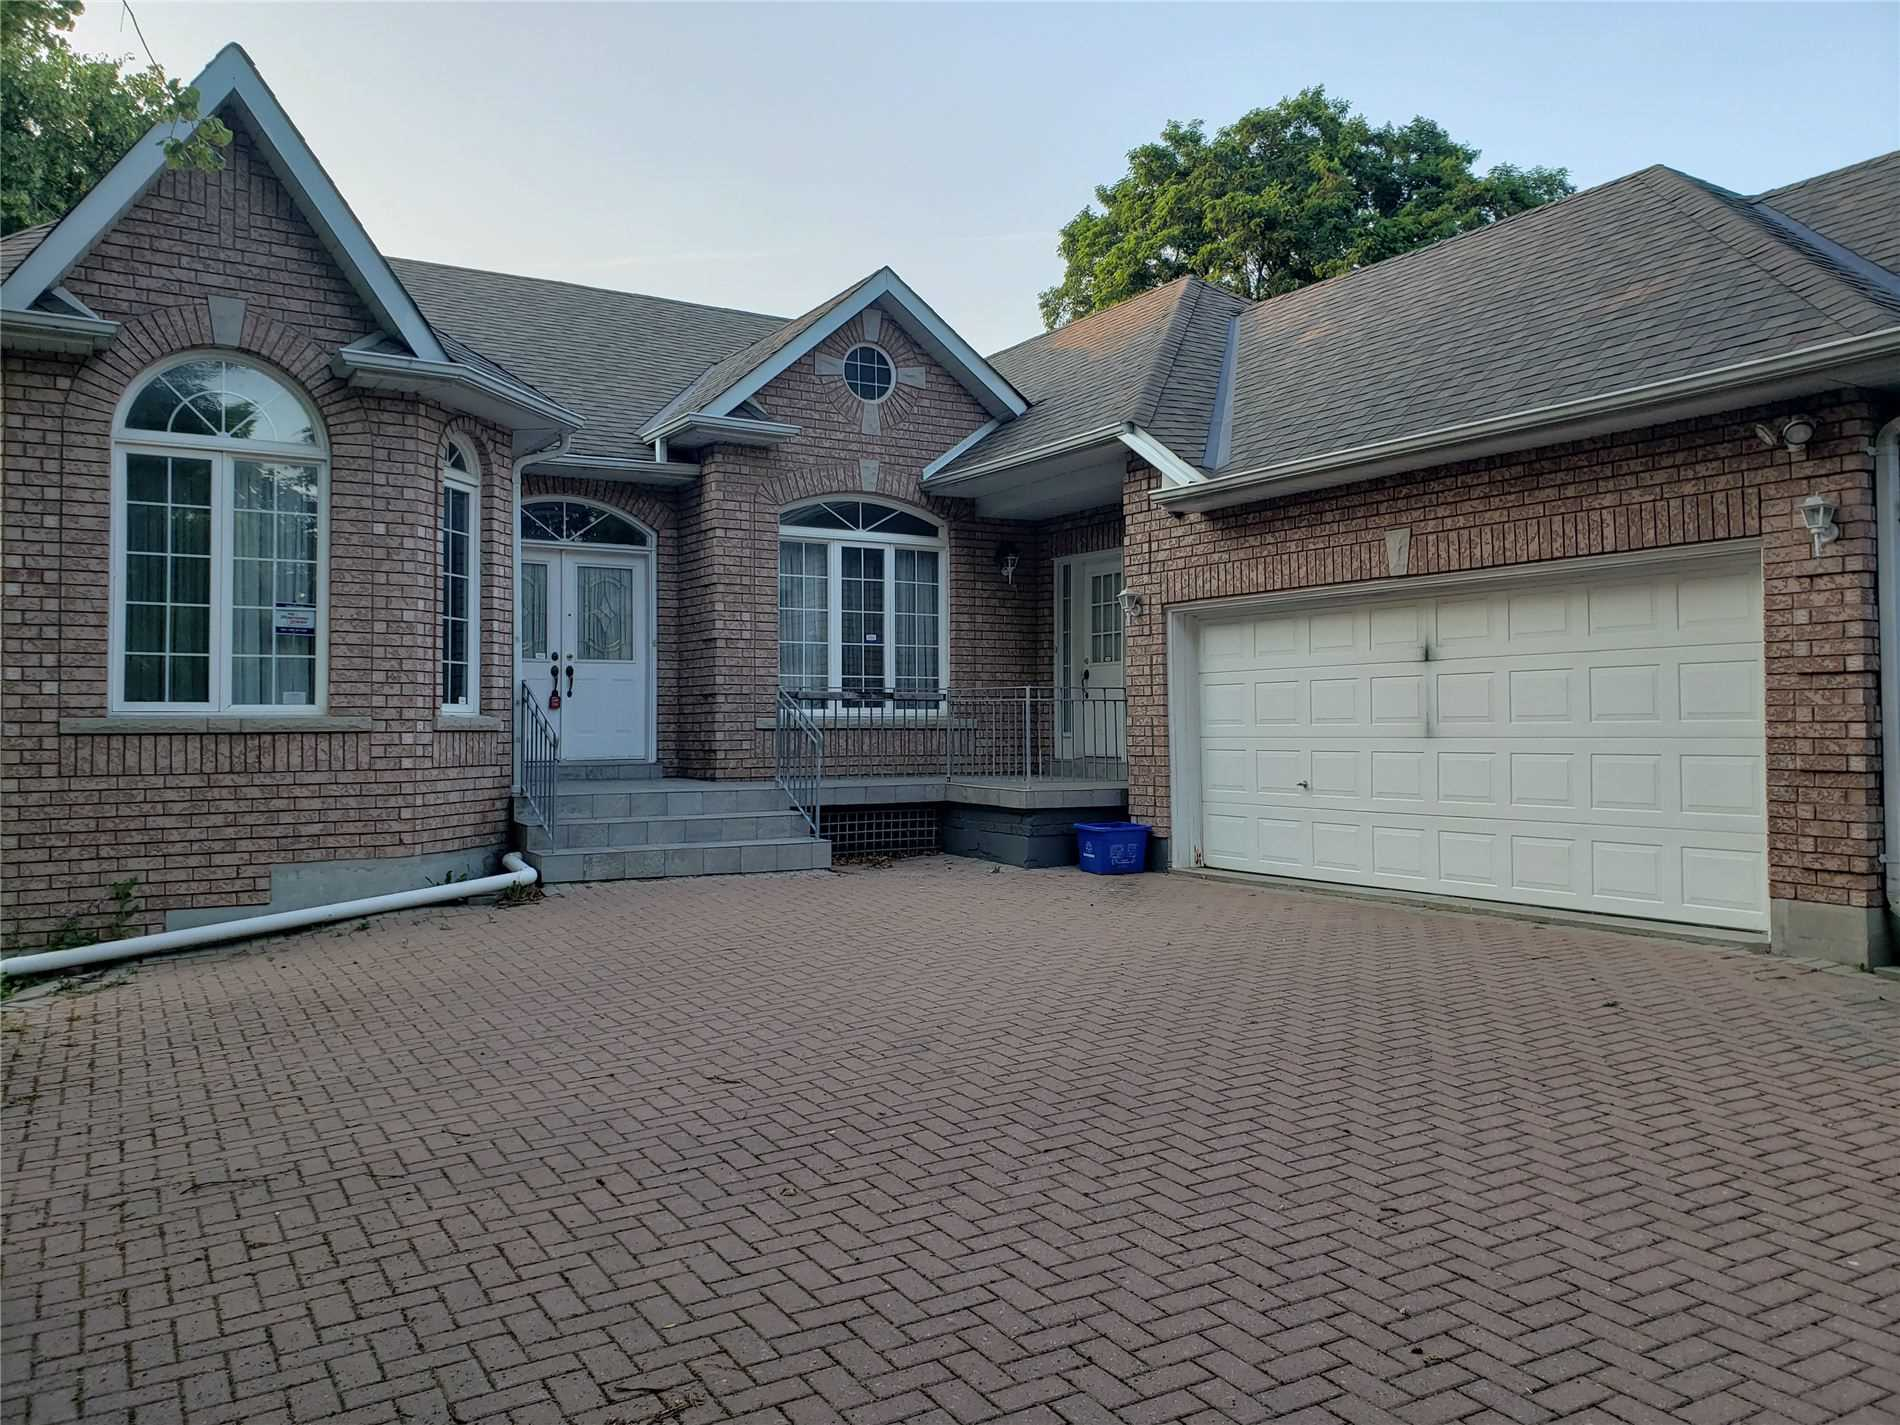 Detached house For Lease In Richmond Hill - 282 Elgin Mills Rd, Richmond Hill, Ontario, Canada L4C4M2 , 2 Bedrooms Bedrooms, ,2 BathroomsBathrooms,Detached,For Lease,Bsm,Elgin Mills